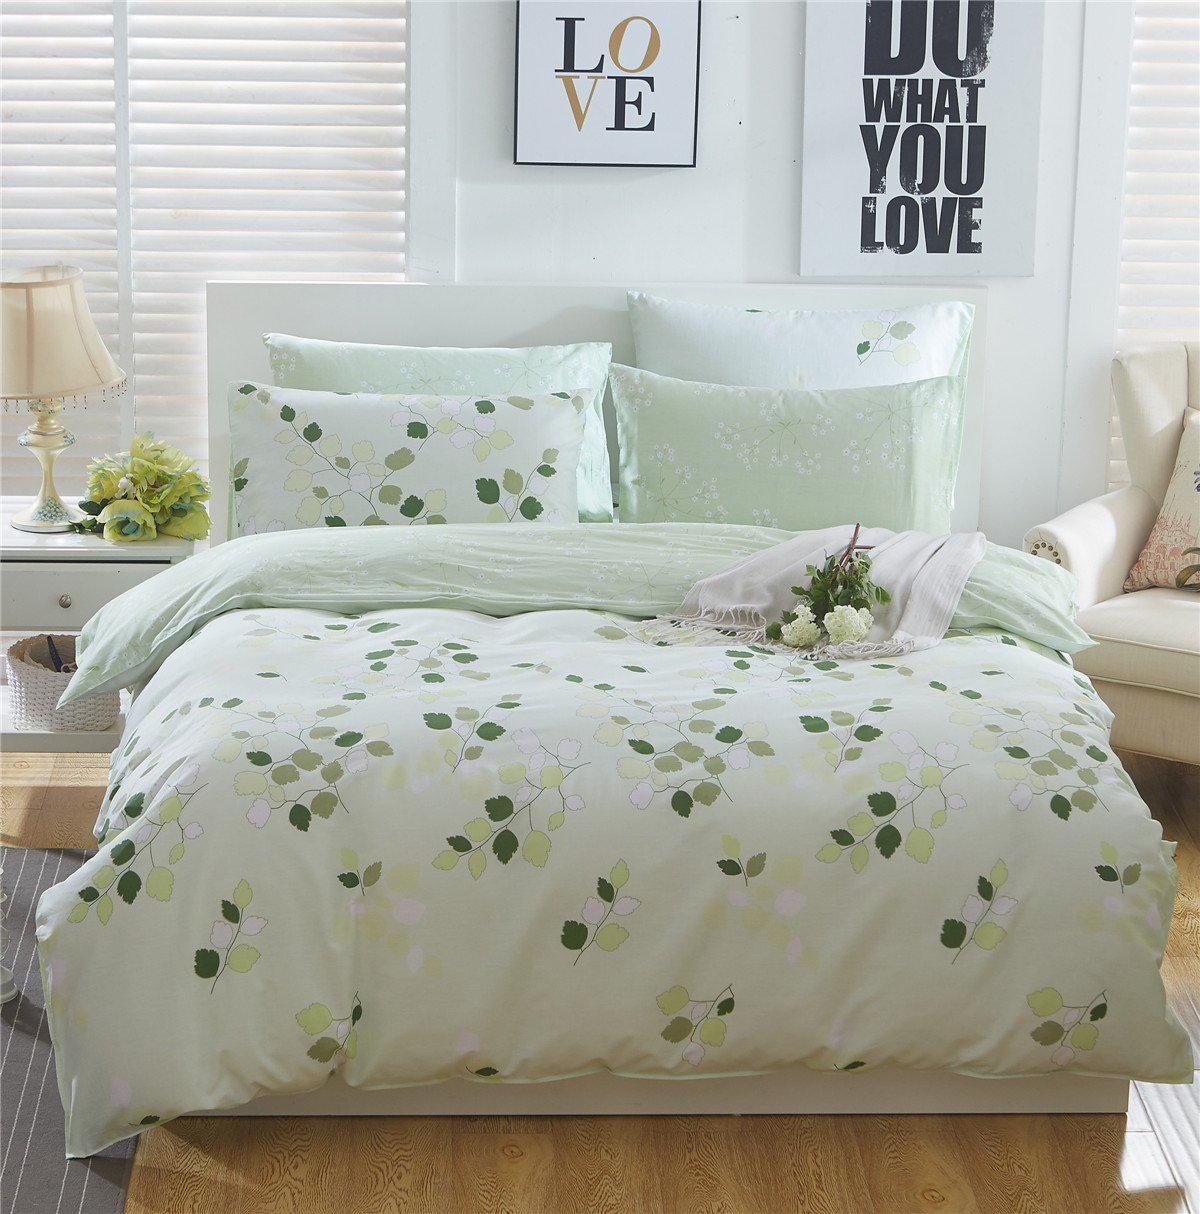 TheFit Paisley Textile Bedding for Adult U2185 Green Leaf Duvet Cover Set 100% Cotton, Twin Queen King Set, 3-4 Pieces (Twin)